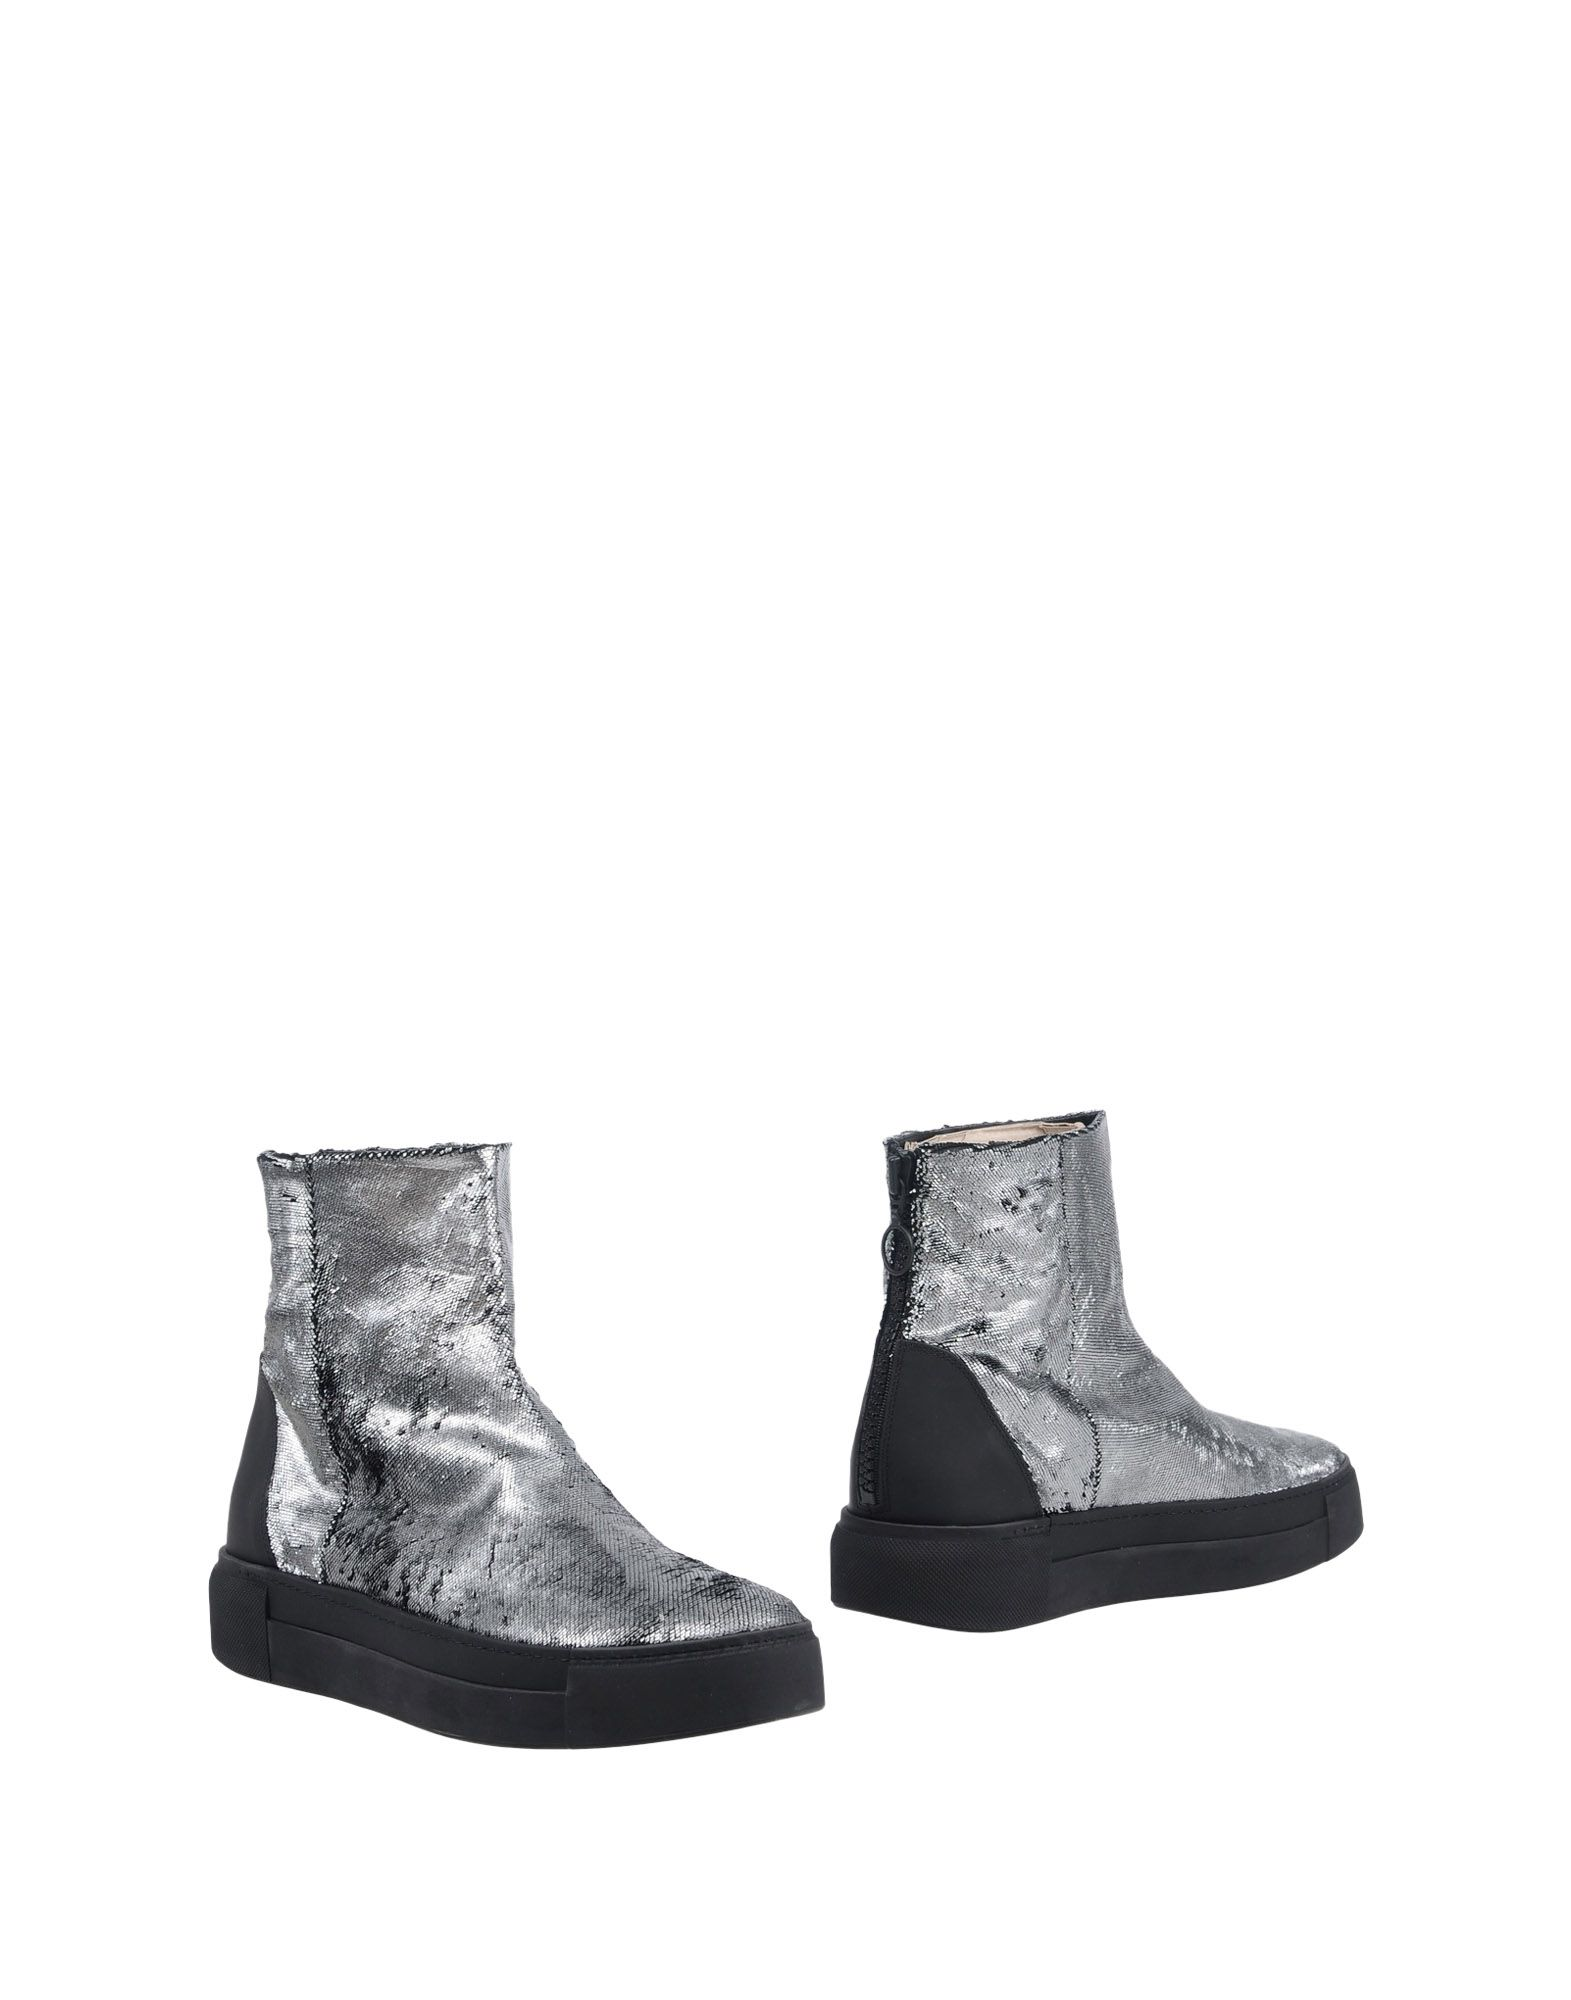 Vic Matiē Ankle Boot Boot Boot - Women Vic Matiē Ankle Boots online on  United Kingdom - 11457852ER 66f32a